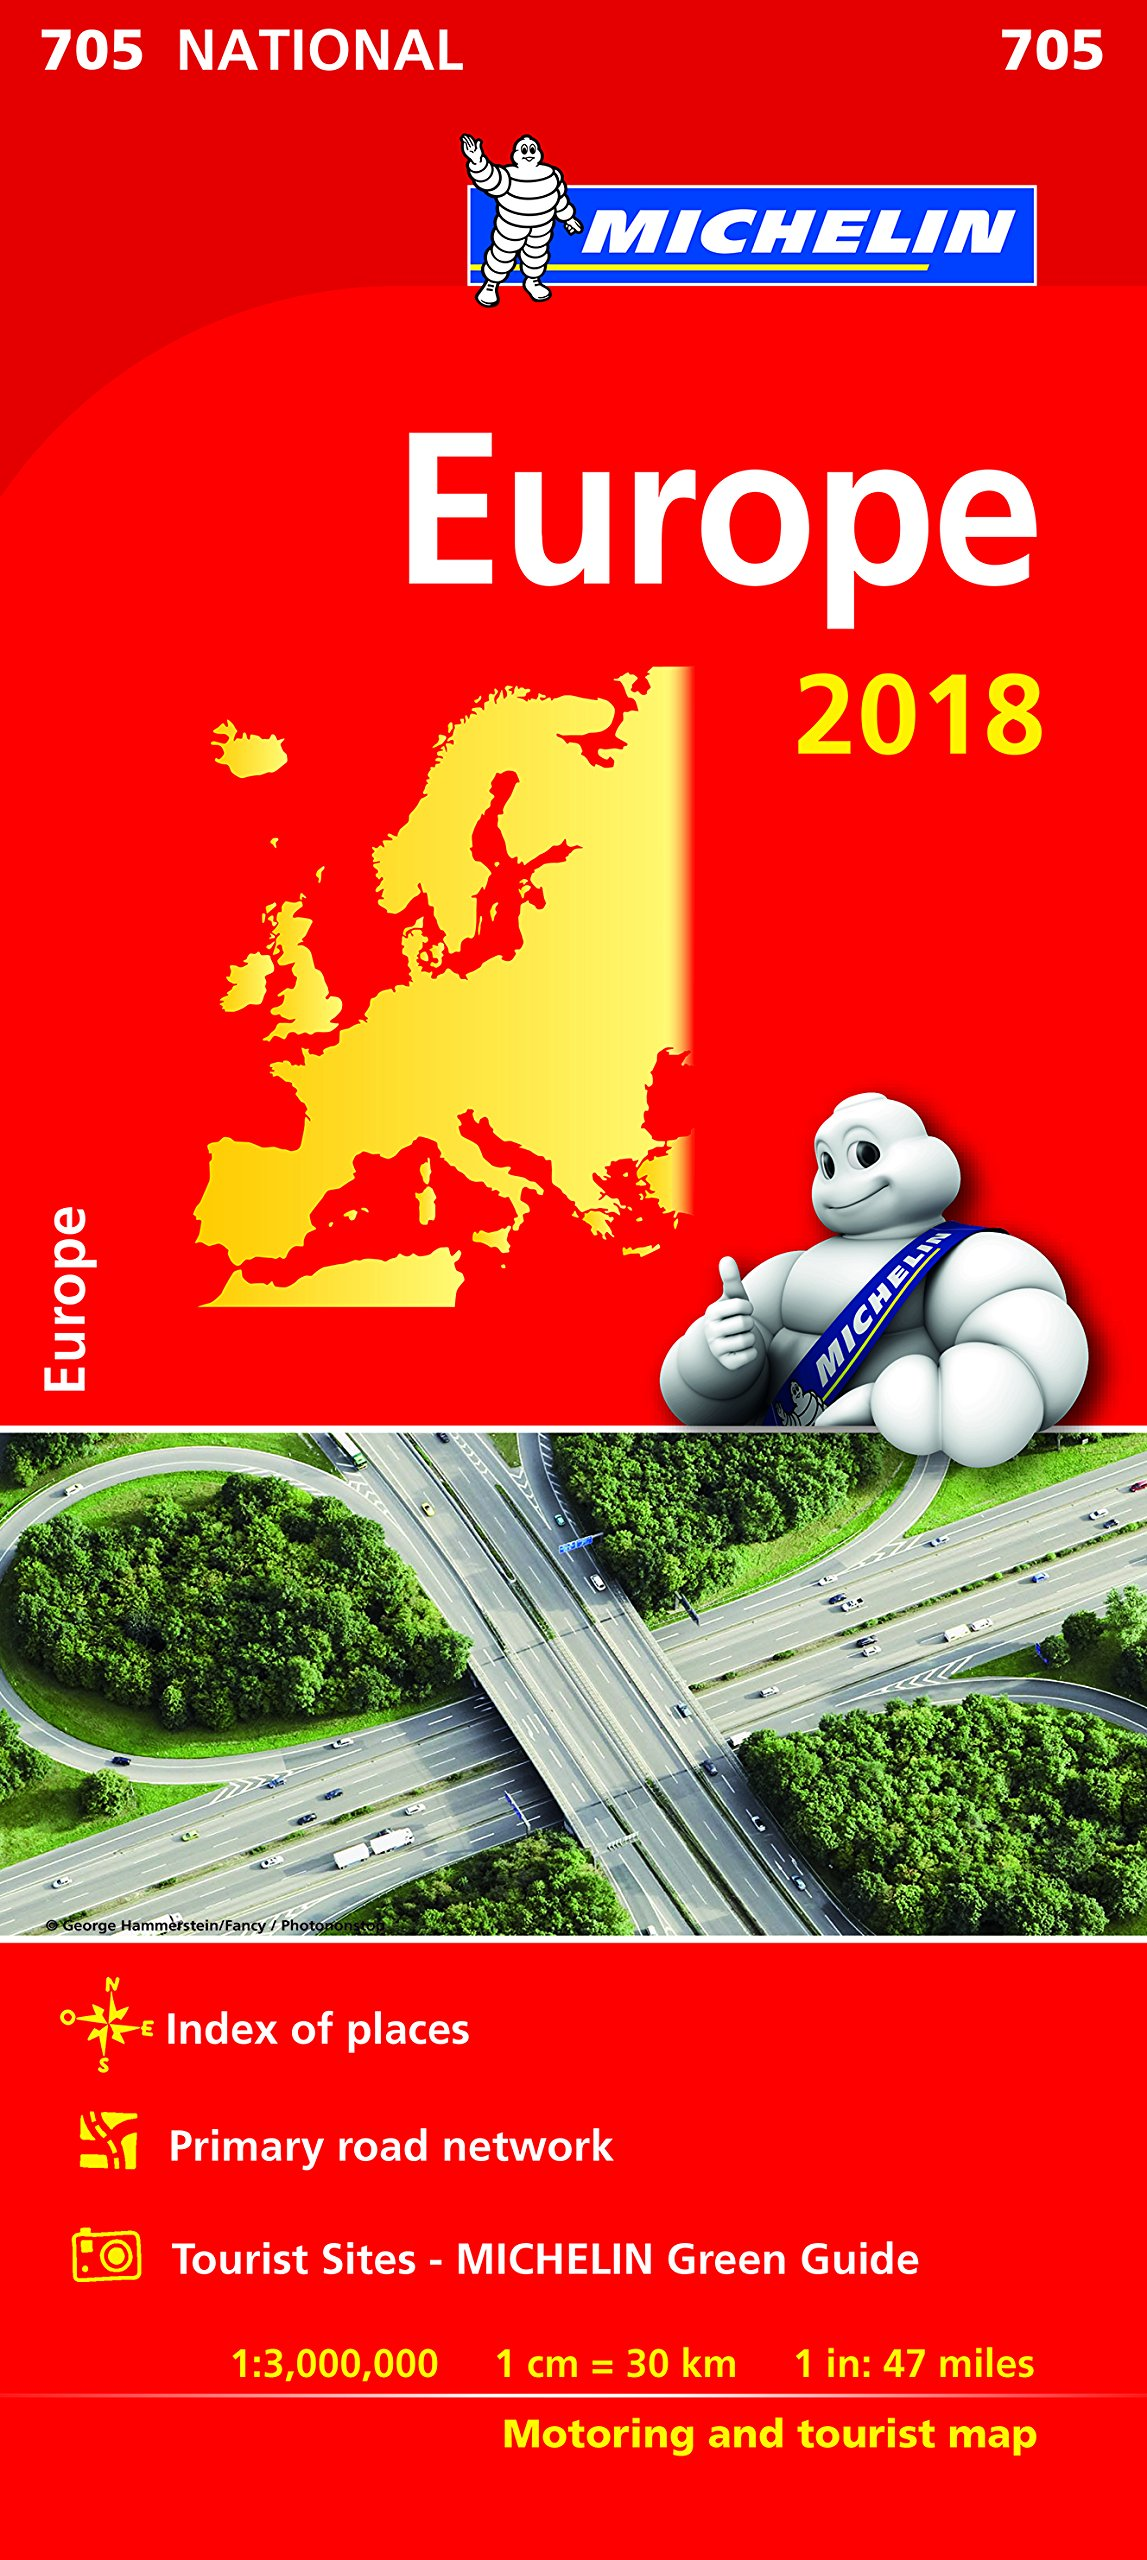 Europe 2018 National Map 705 (Anglais) Carte – Carte pliée, 8 janvier 2018 Michelin Michelin Maps 2067228617 Karten / Stadtpläne